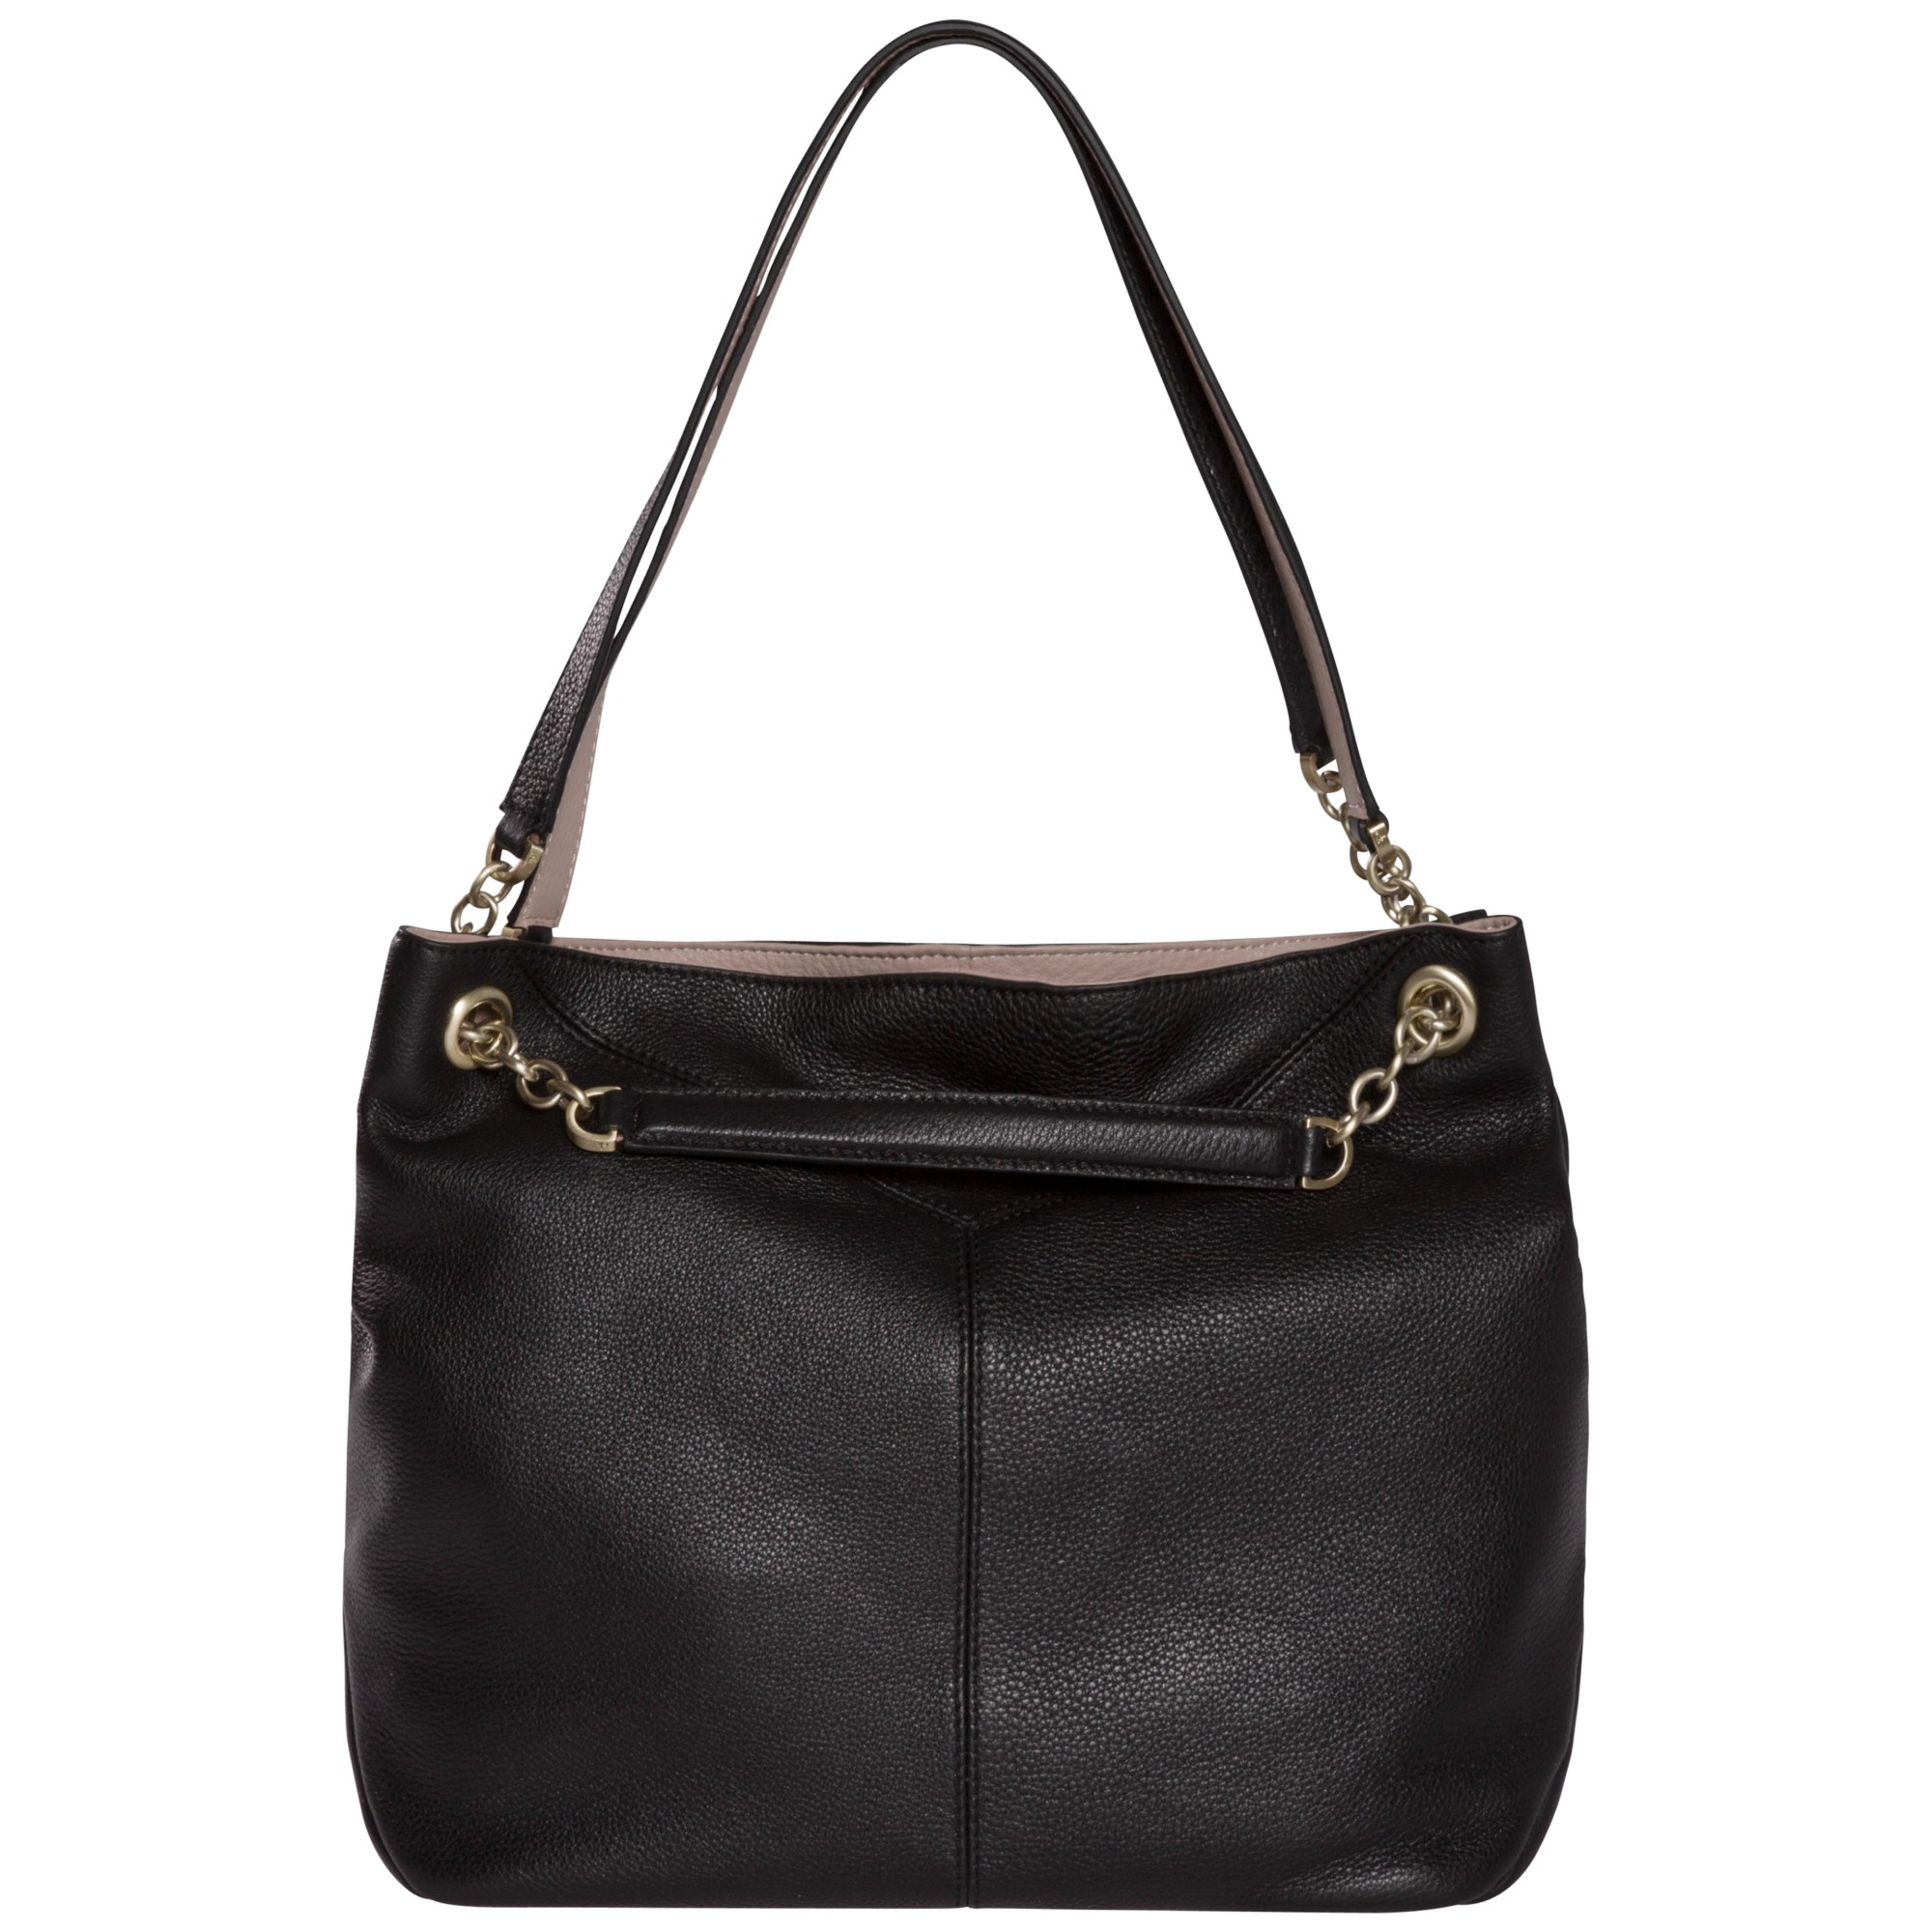 53d28a057b Calvin Klein Mia Chain Saffiano Leather Tote Bag in Black - Lyst